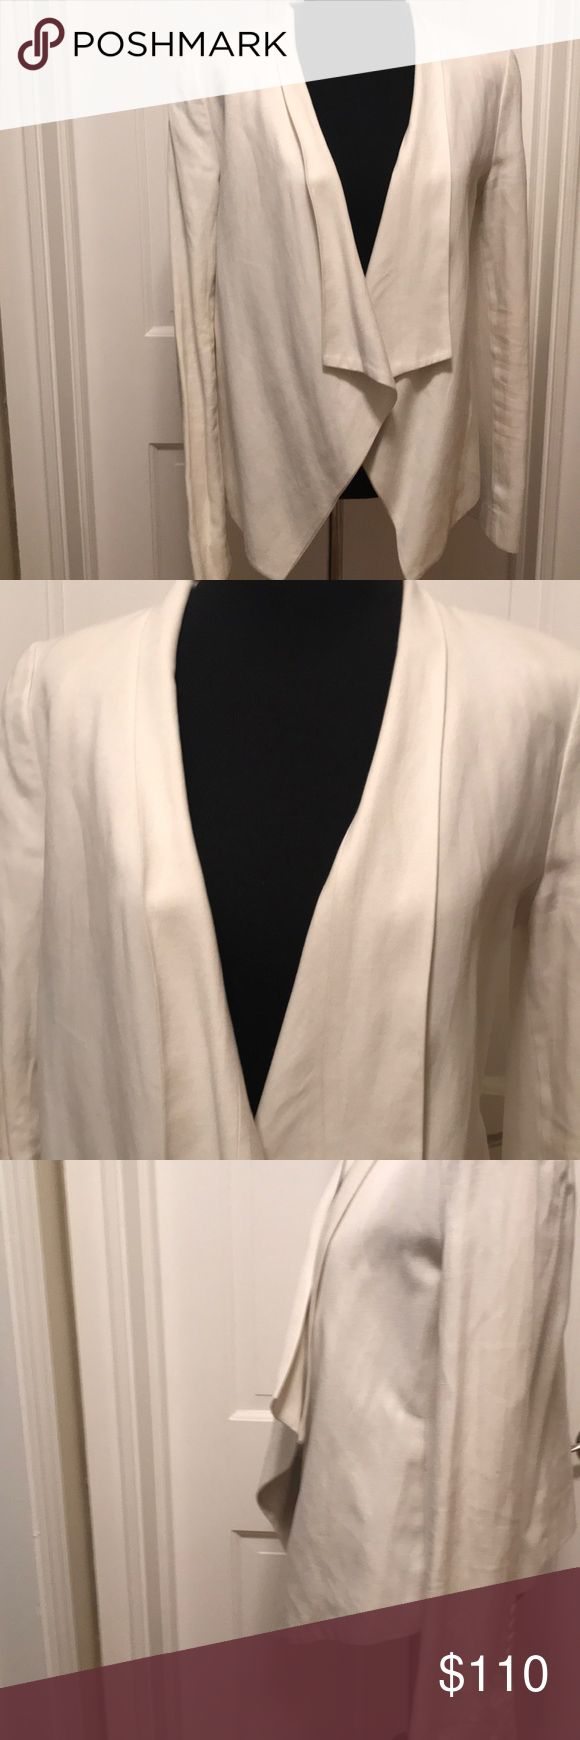 """vintage Abree relaxed  BCBG Maxazria Blazer. Vet mixed vintage lined off white blazer with shoulder pads.  Is an open front blazer. underarm to underarm is 18"""" and length is 26"""" at the longest point in front. Sleeves are 24.5"""" in length.  Is clean but use a dry cleaning. BCBGMaxAzria Jackets & Coats Blazers"""